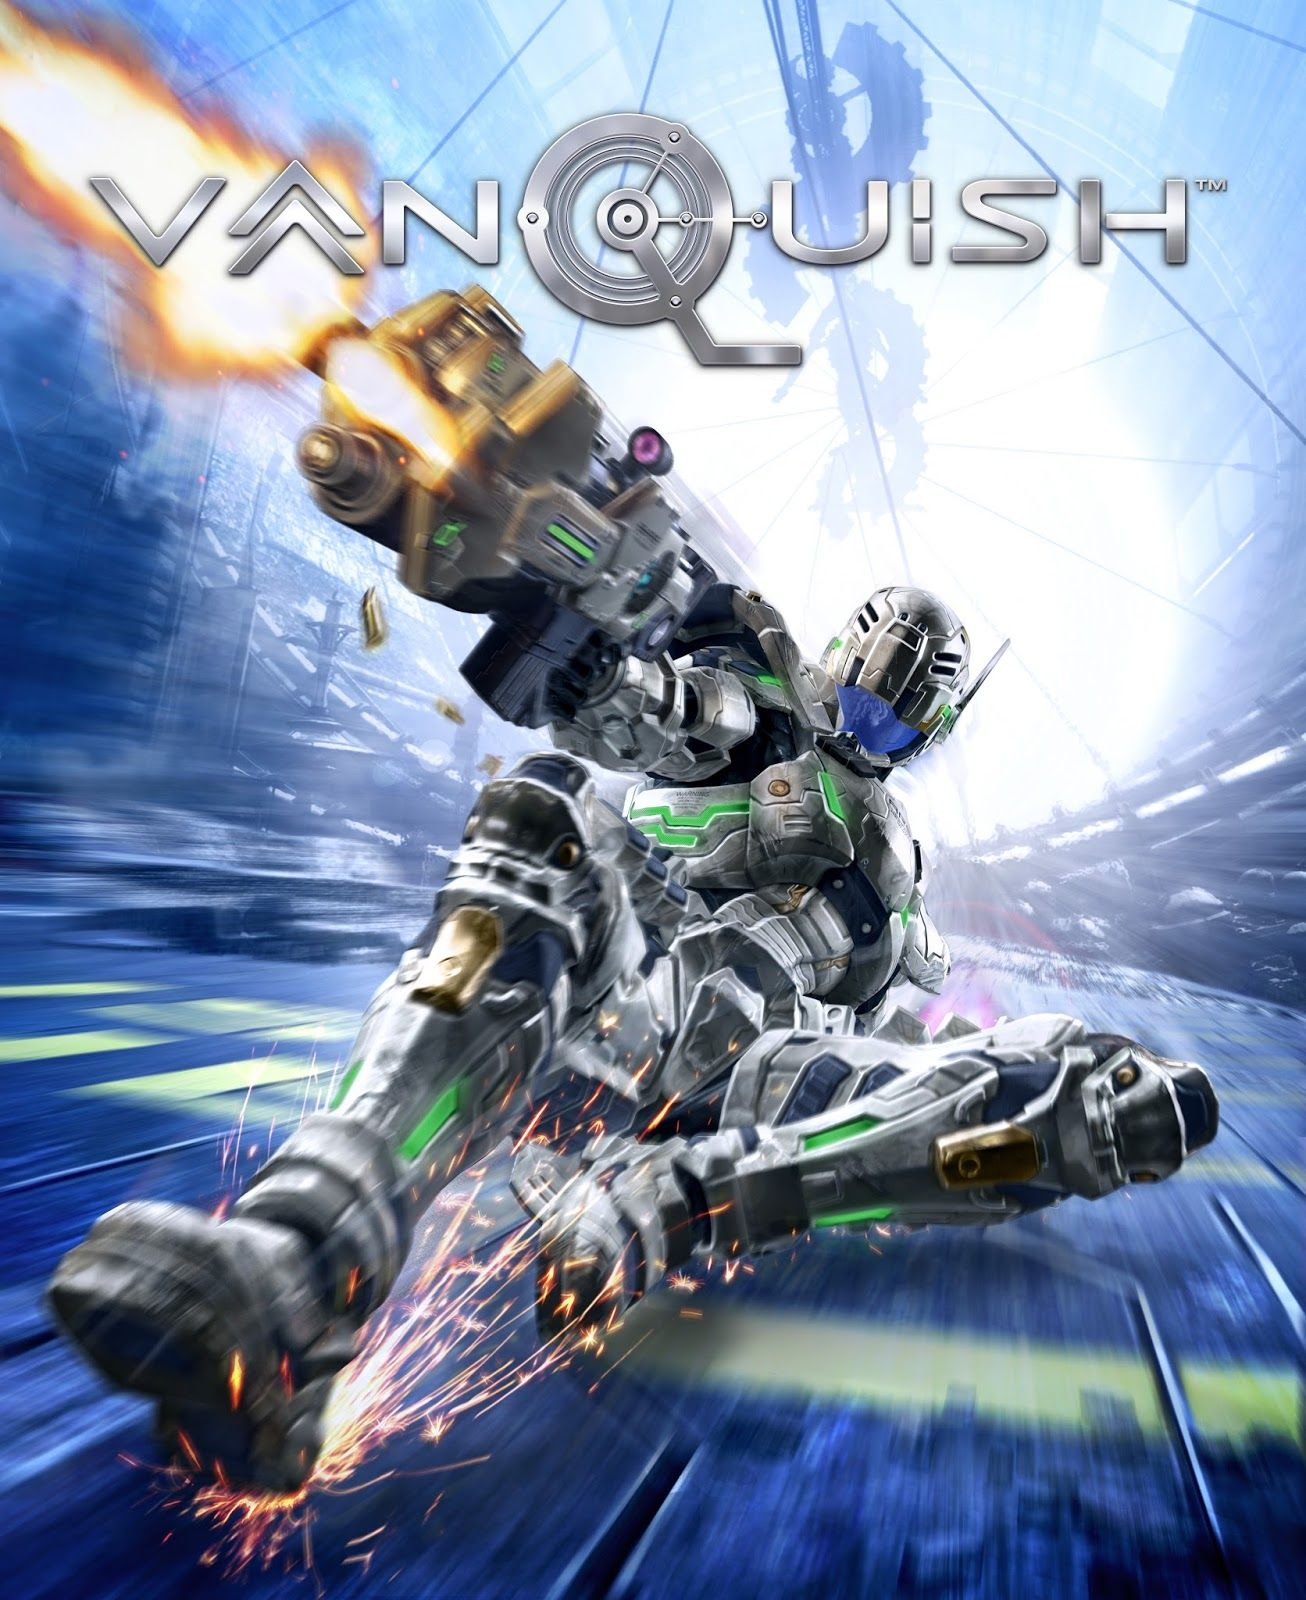 New Games VANQUISH (PC, PS3, Xbox 360) Video game